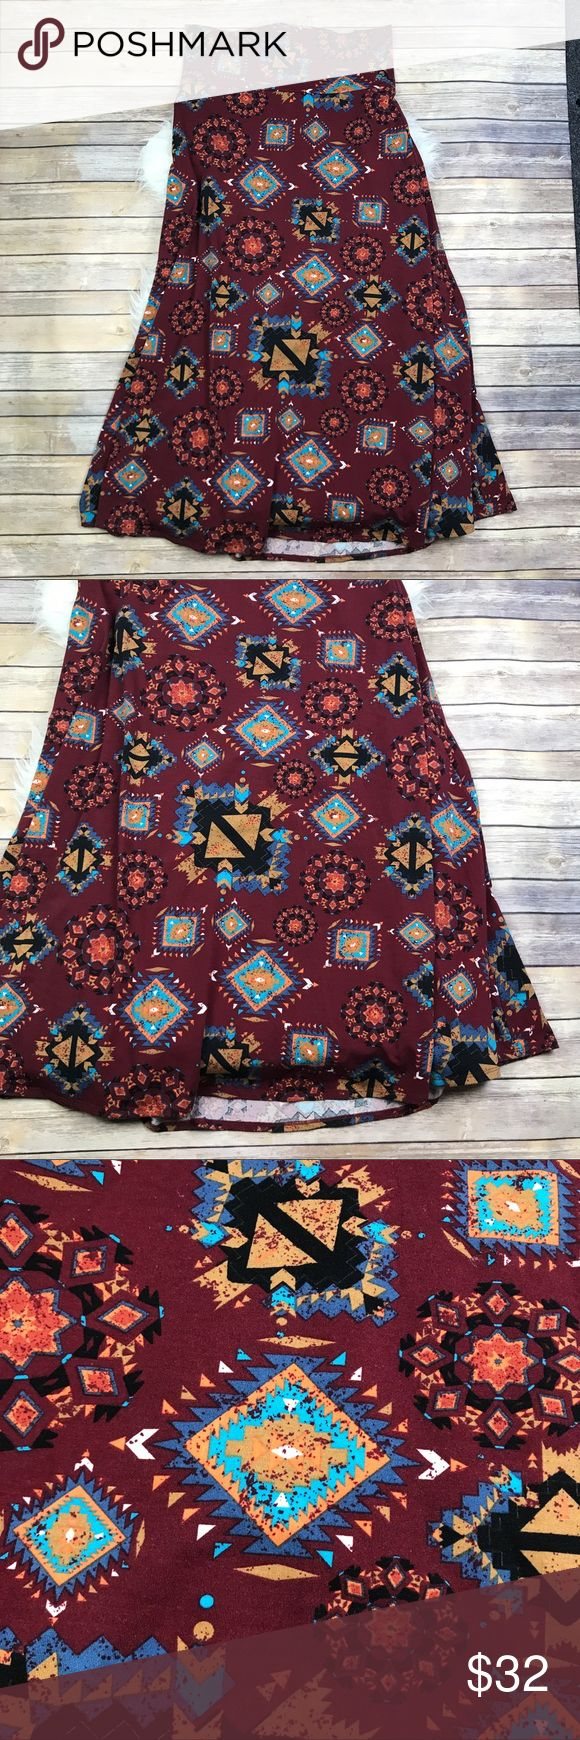 "LuLaRoe Aztec Tribal Maxi Skirt Excellent condition LuLaRoe Aztec Tribal Maxi Skirt. Size XL (18-20). Smooth 96% spun polyester, 4% spandex. Waistband can be folded down. 44"" long. No trades, offers welcome. LuLaRoe Skirts Maxi"